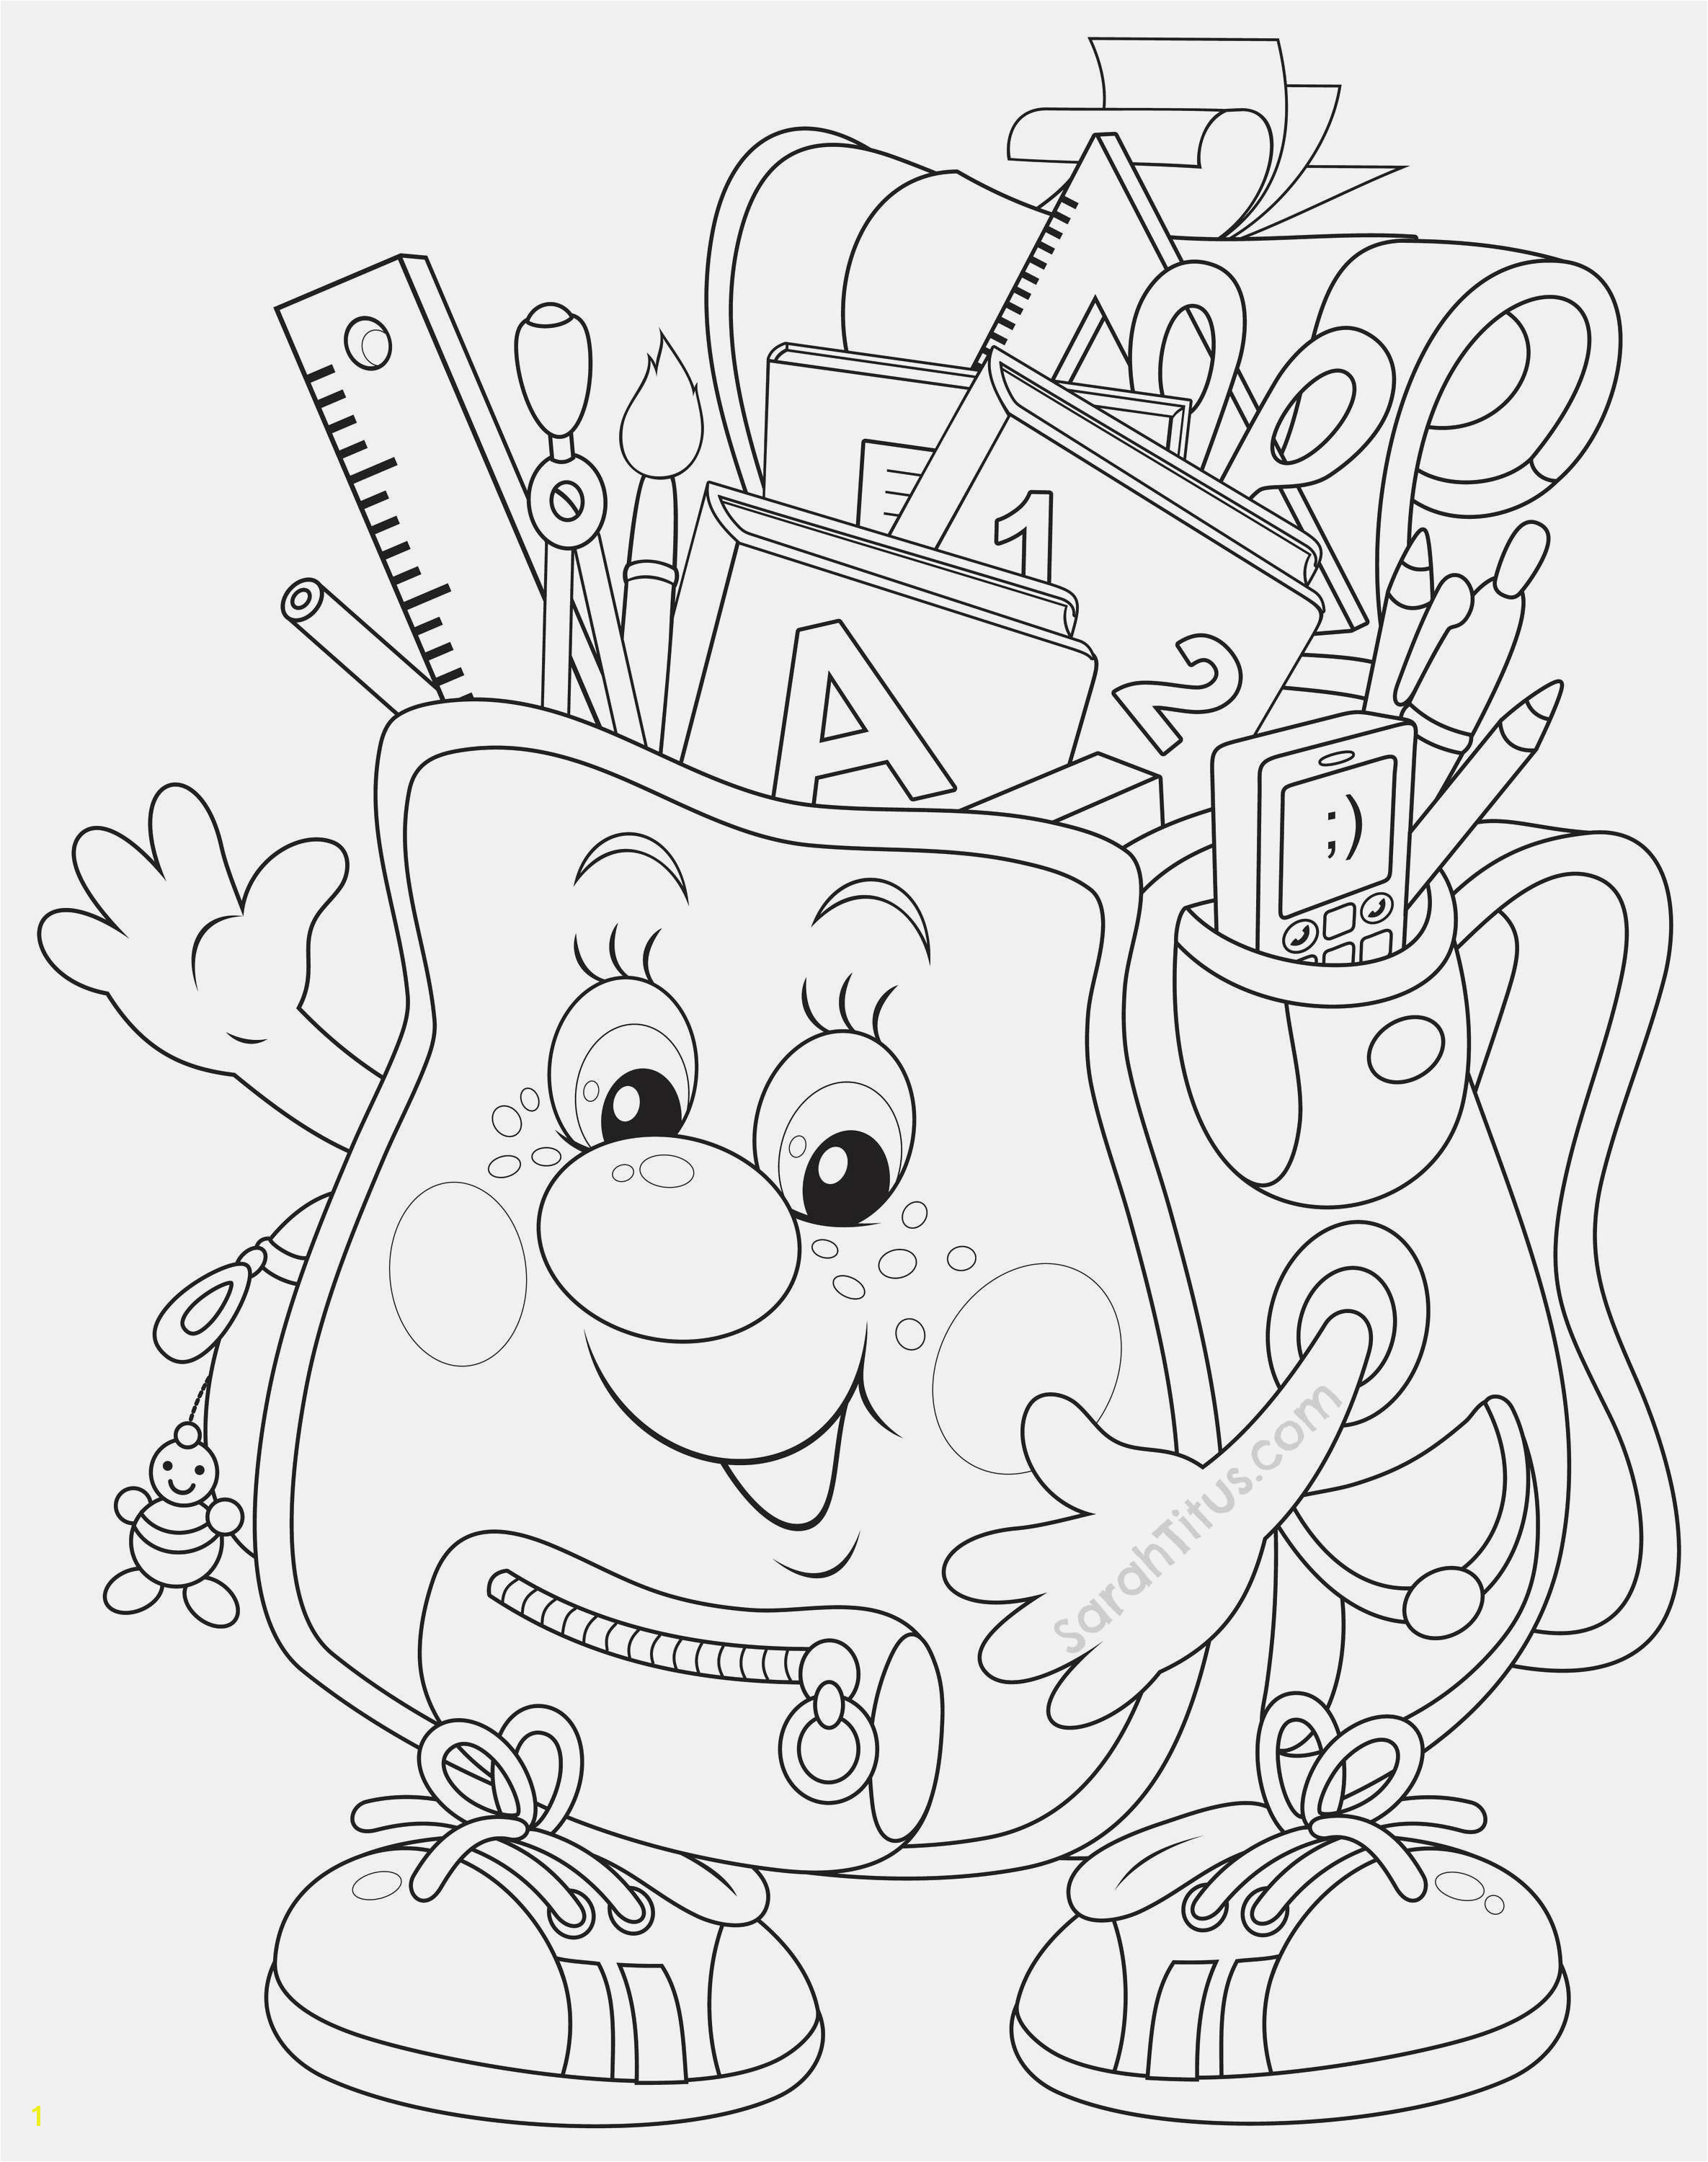 Hello Kitty Printable Coloring Pages Download and Print for Free Hello Kitty Printable Coloring Page Beautiful